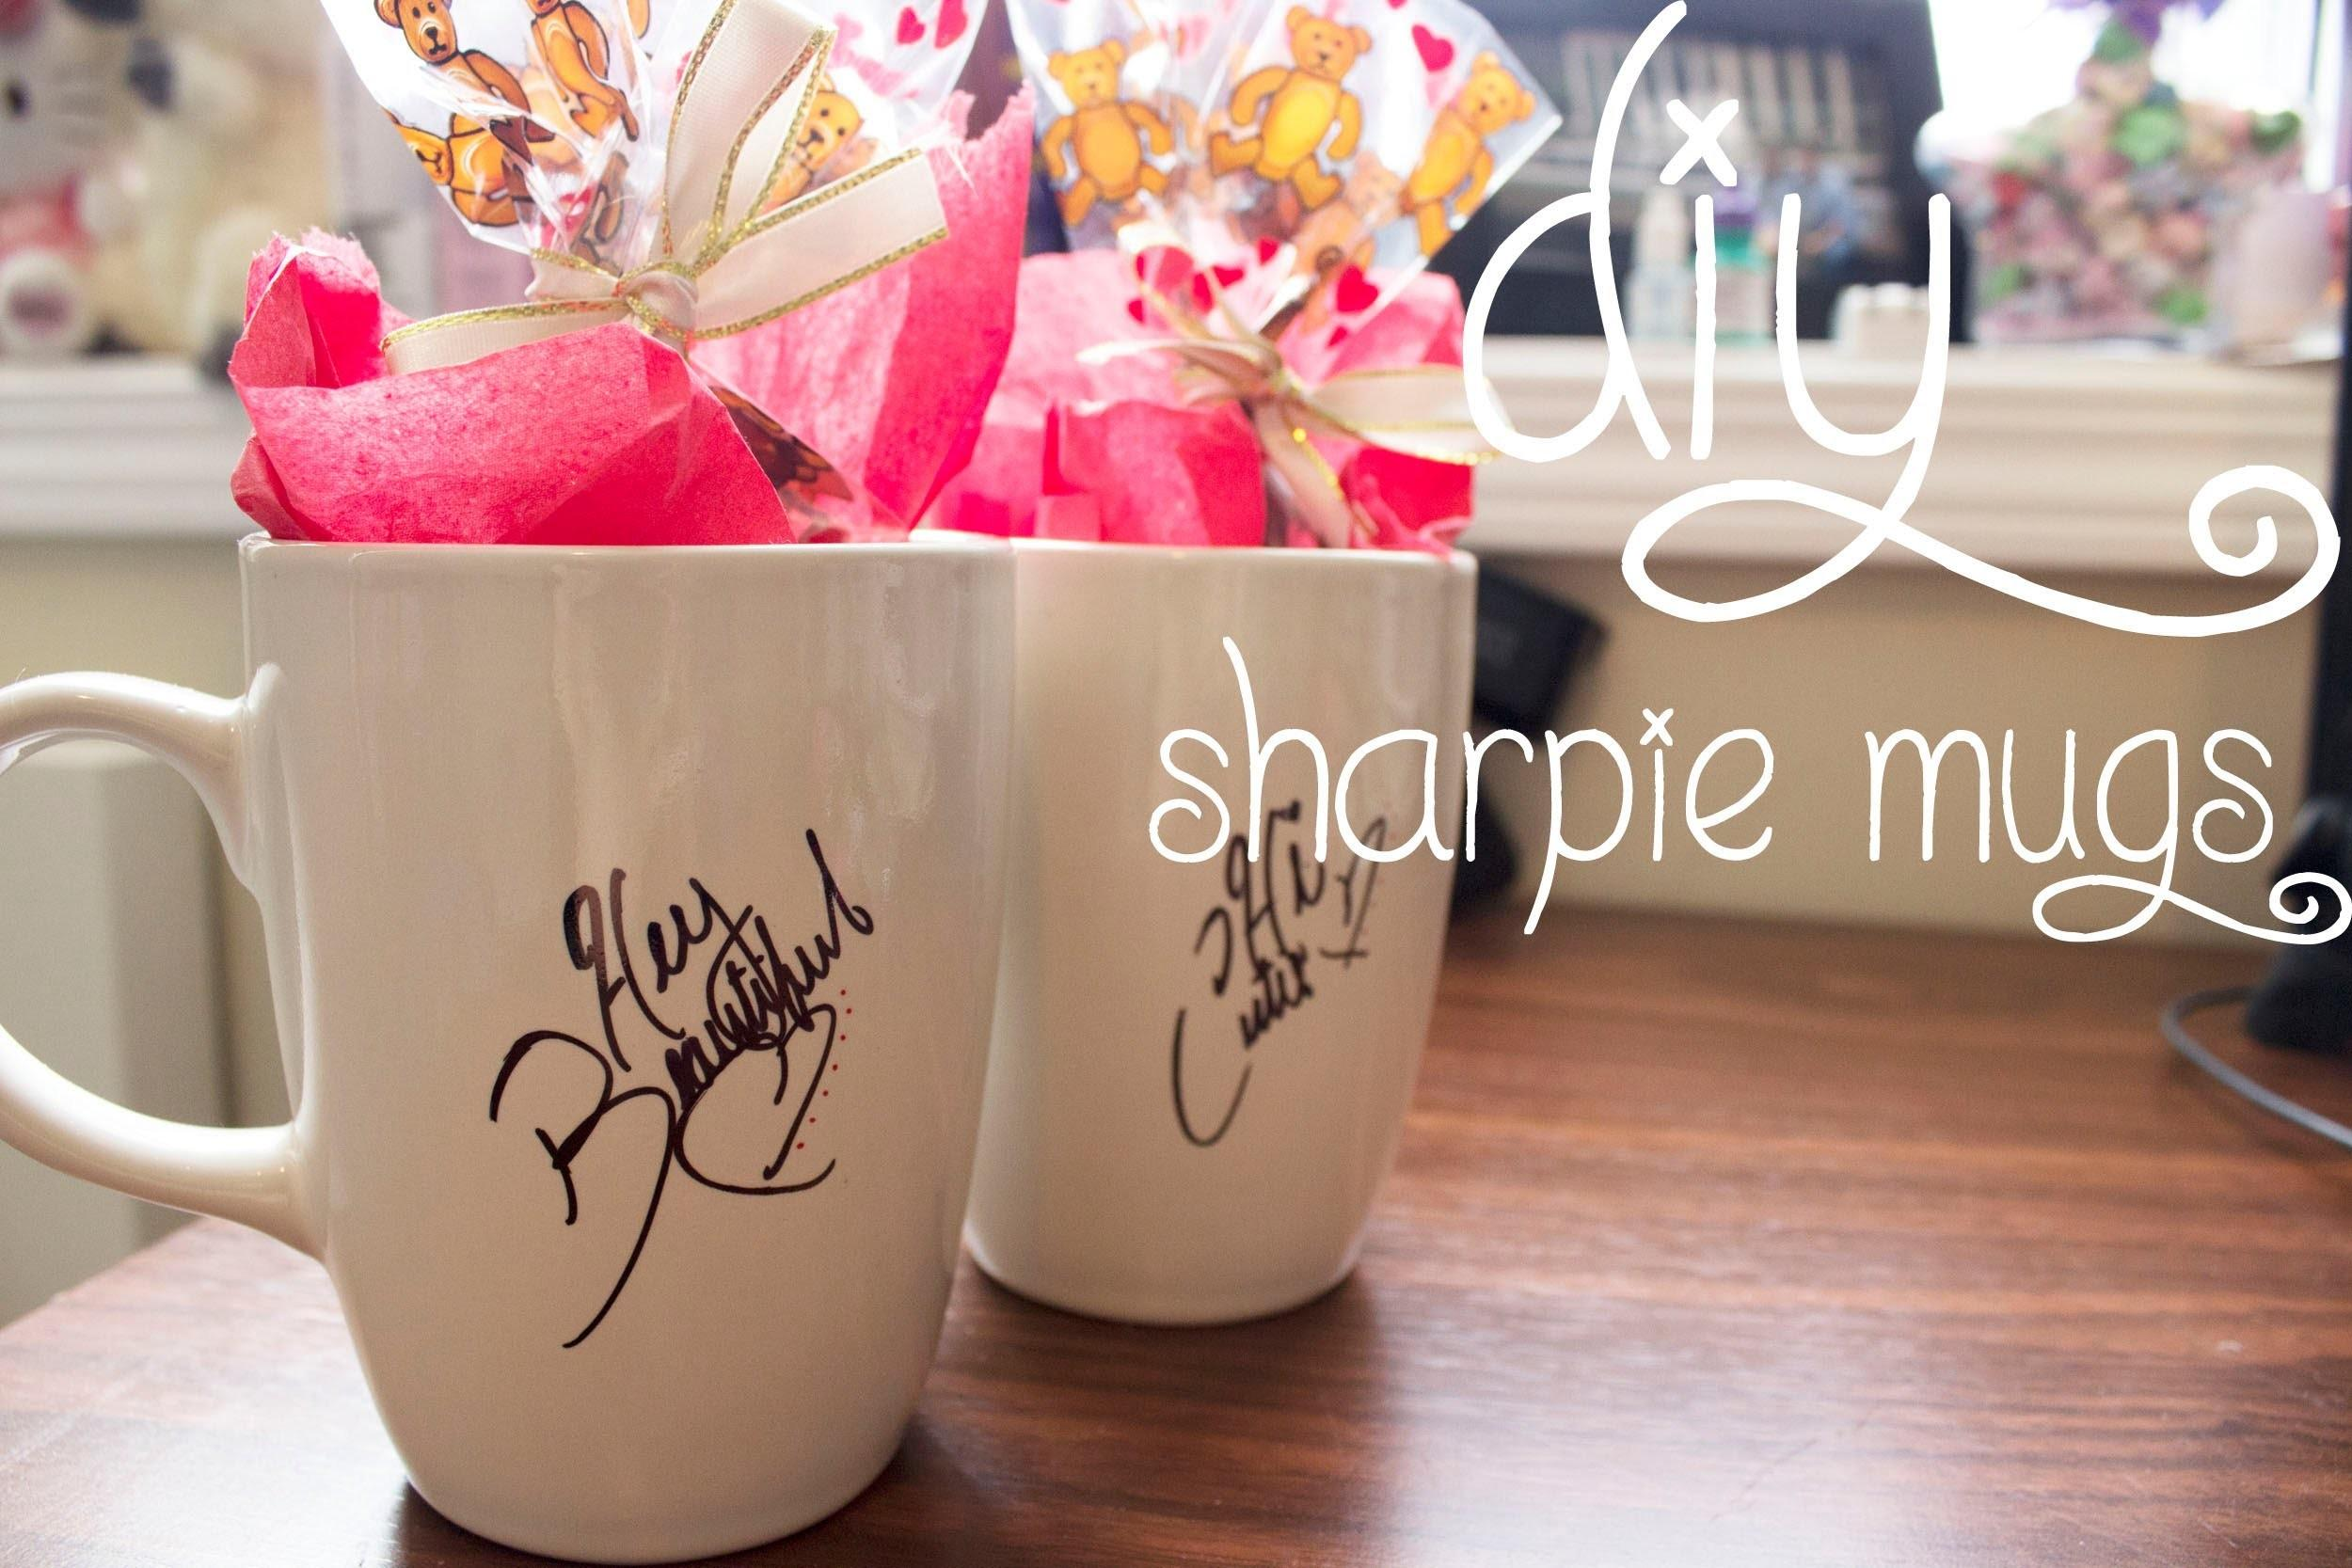 Days Valentine Day Diy Sharpie Mugs